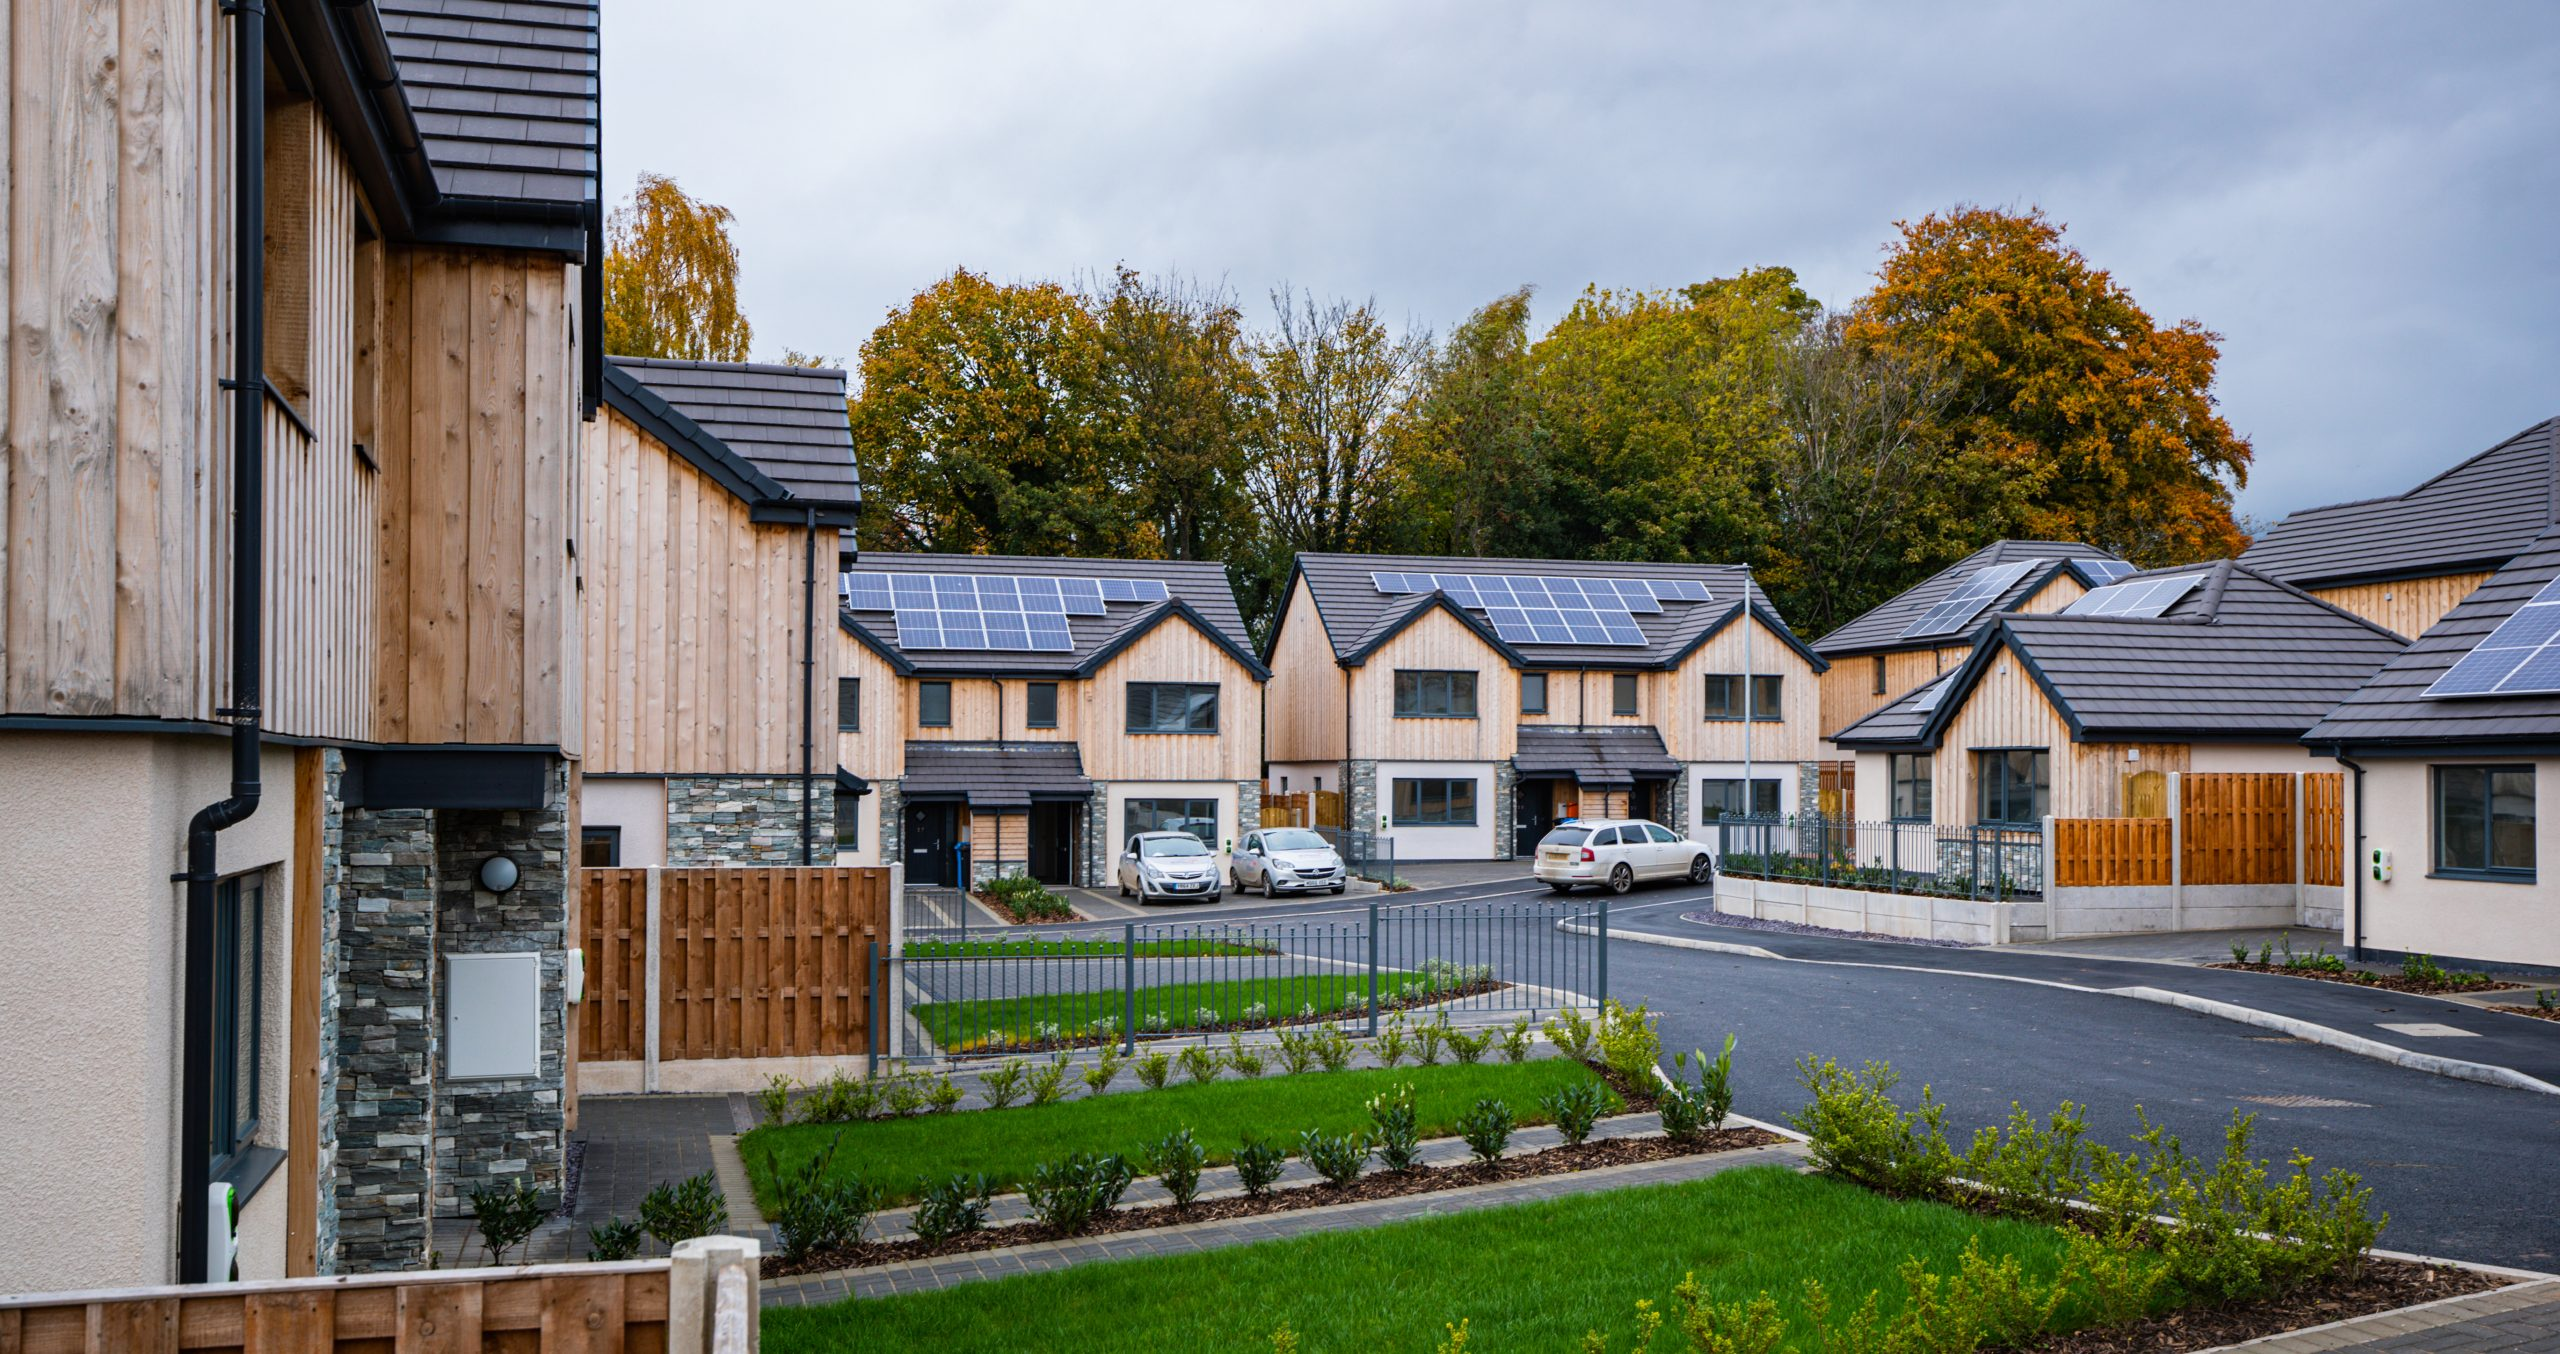 ClwydAlyn affordable housing scheme in Llanbedr DC, Wales